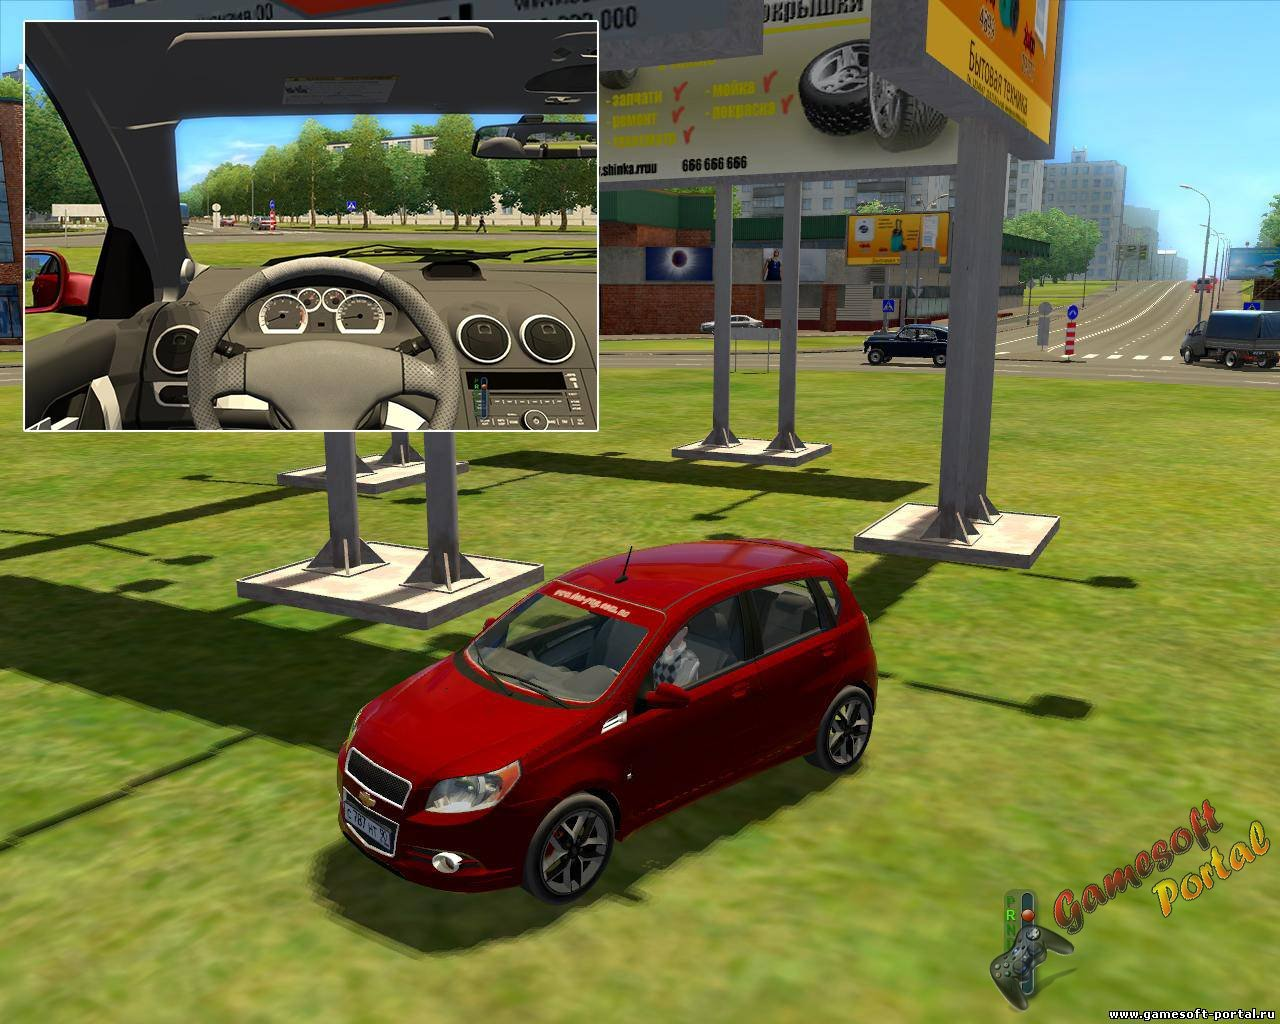 Chevrolet Aveo Hatchback для 3D Инструктор 2.2.7